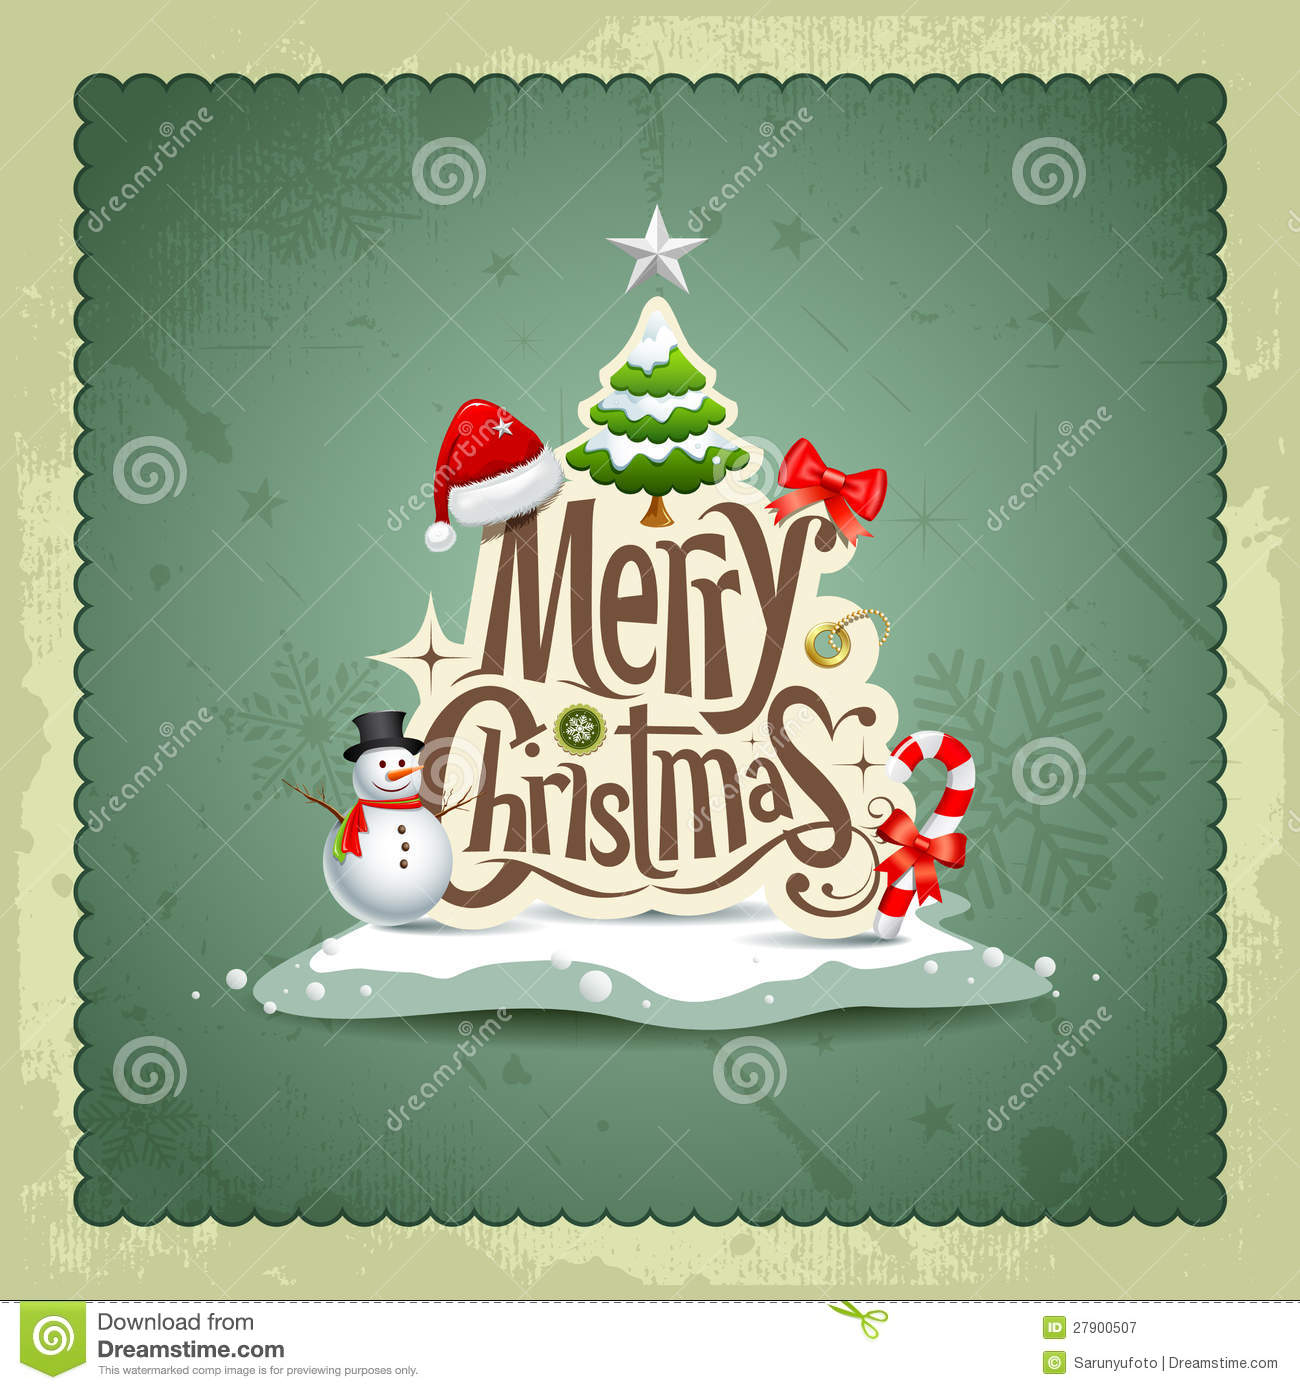 Merry Christmas Vintage Design Background Royalty Free